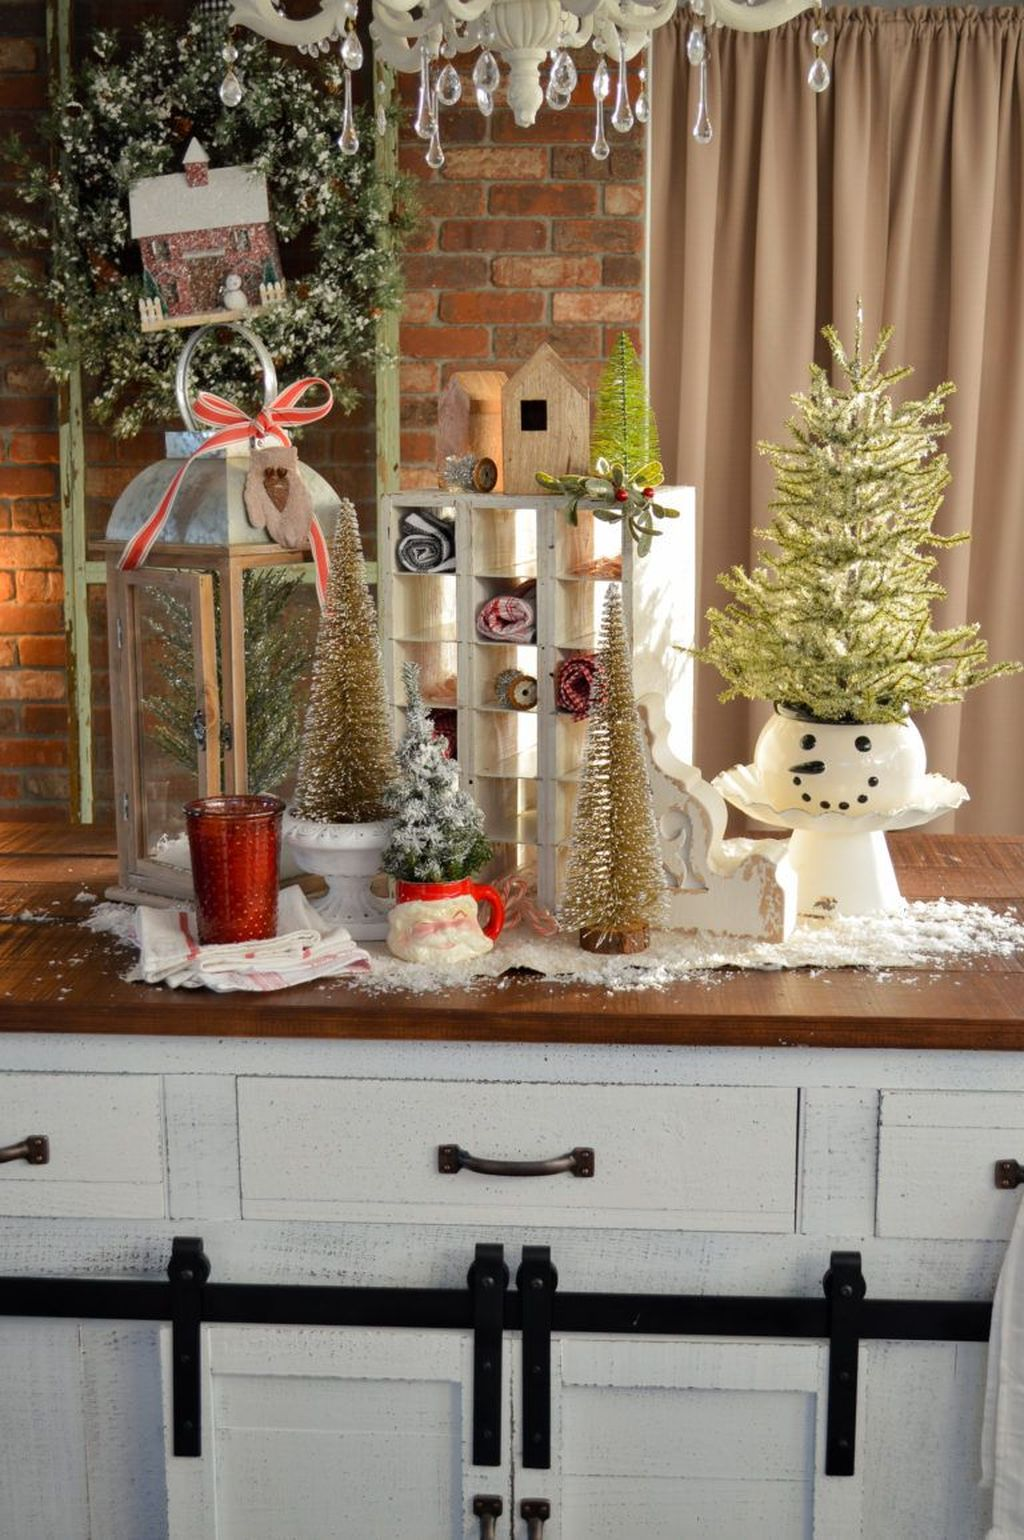 Popular Christmas Decor Ideas For Kitchen Island 01